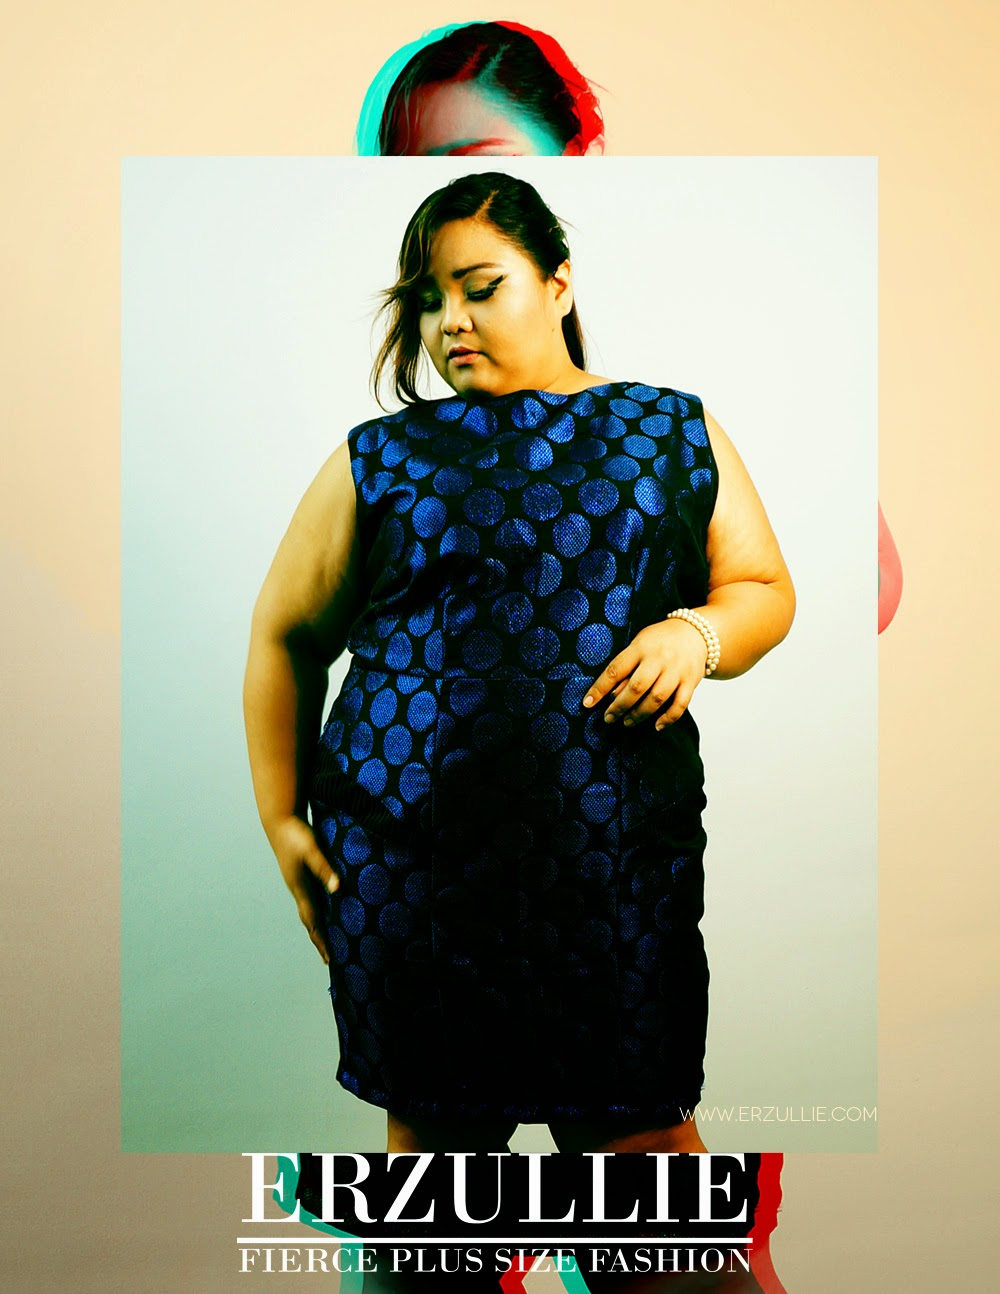 Erzullie Fierce Plus Size Fashion Philippines Plus Size